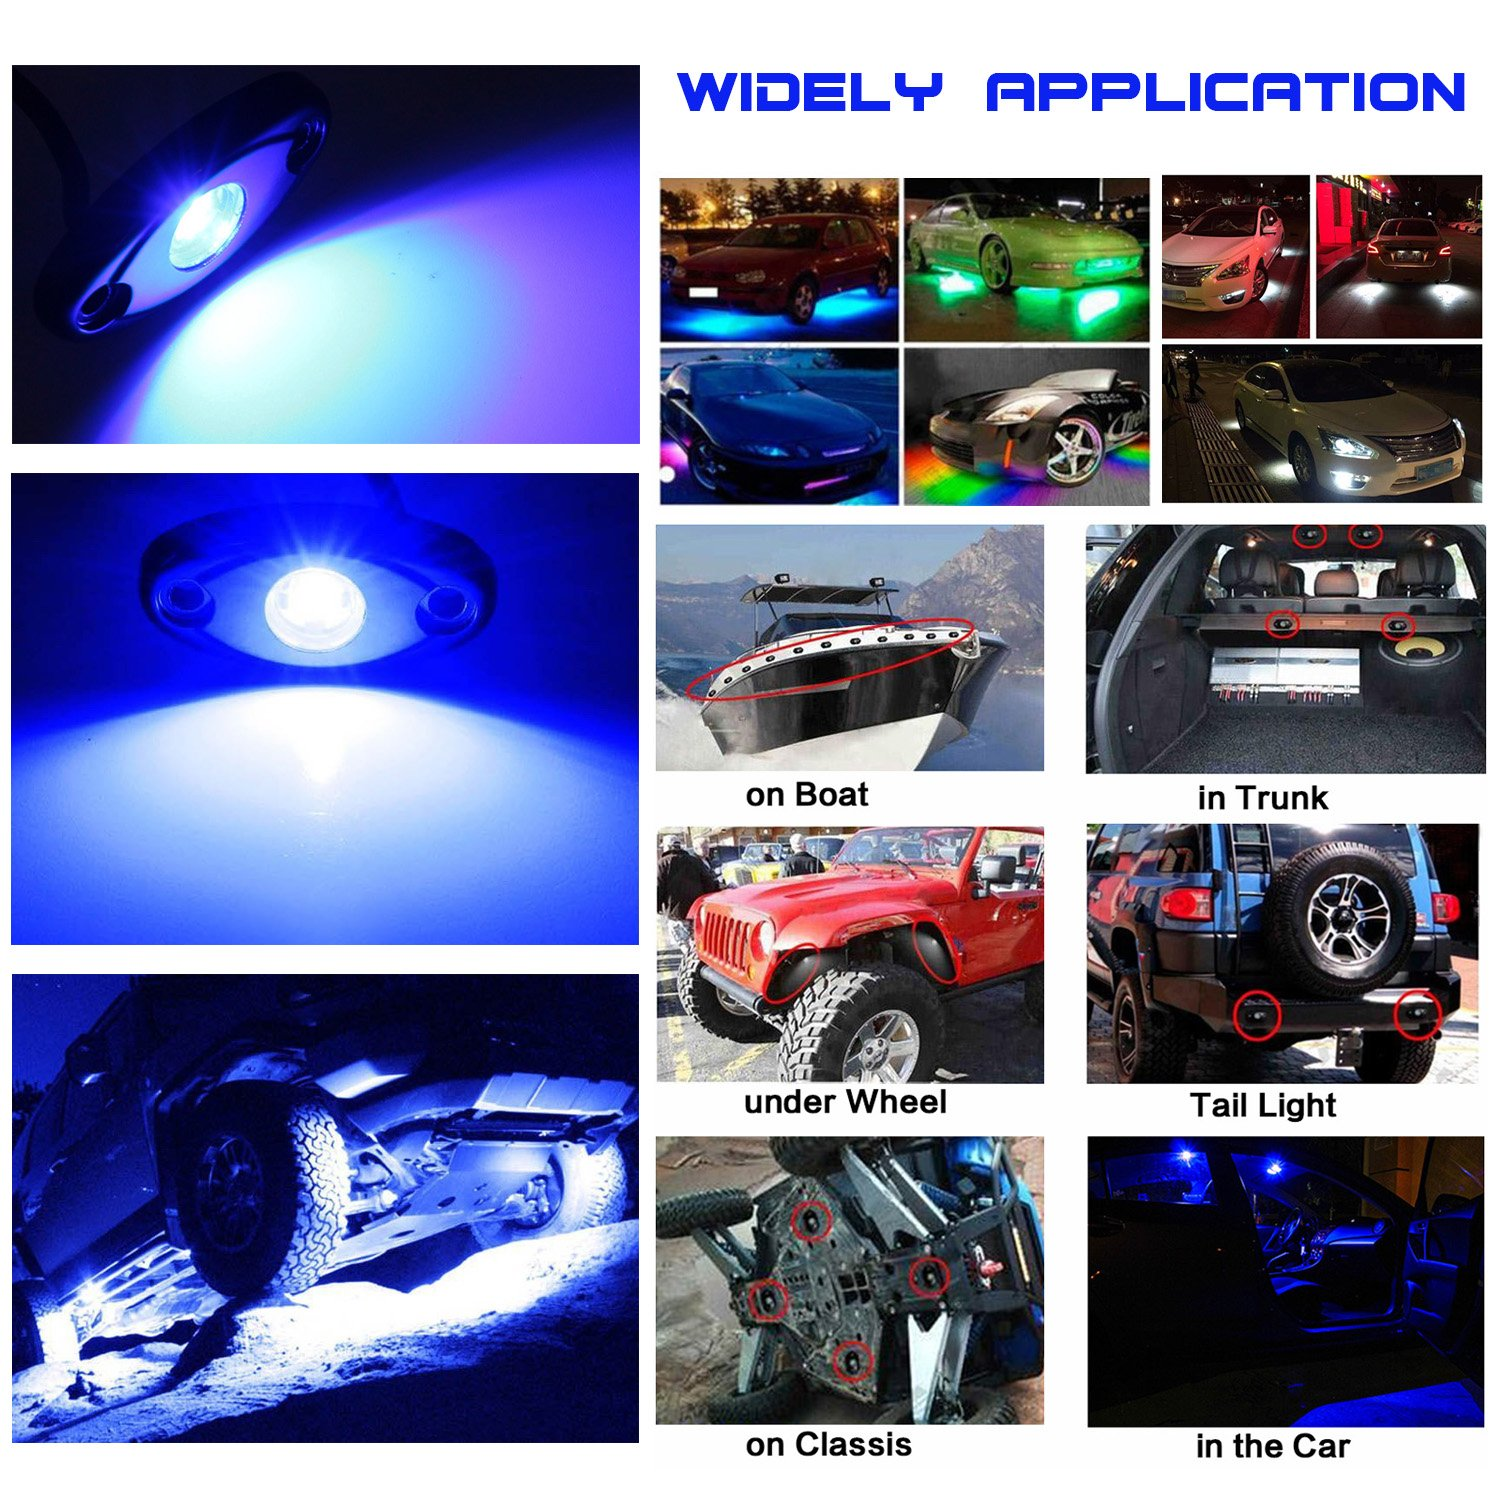 LEDMIRCY LED Rock Lights Green Kit for JEEP Off Road Truck ATV SUV Car Boat Auto High Power Underbody Glow Neon Trail Rig Lamp Underglow Lights Waterproof Shockproof Pack of 6,Green